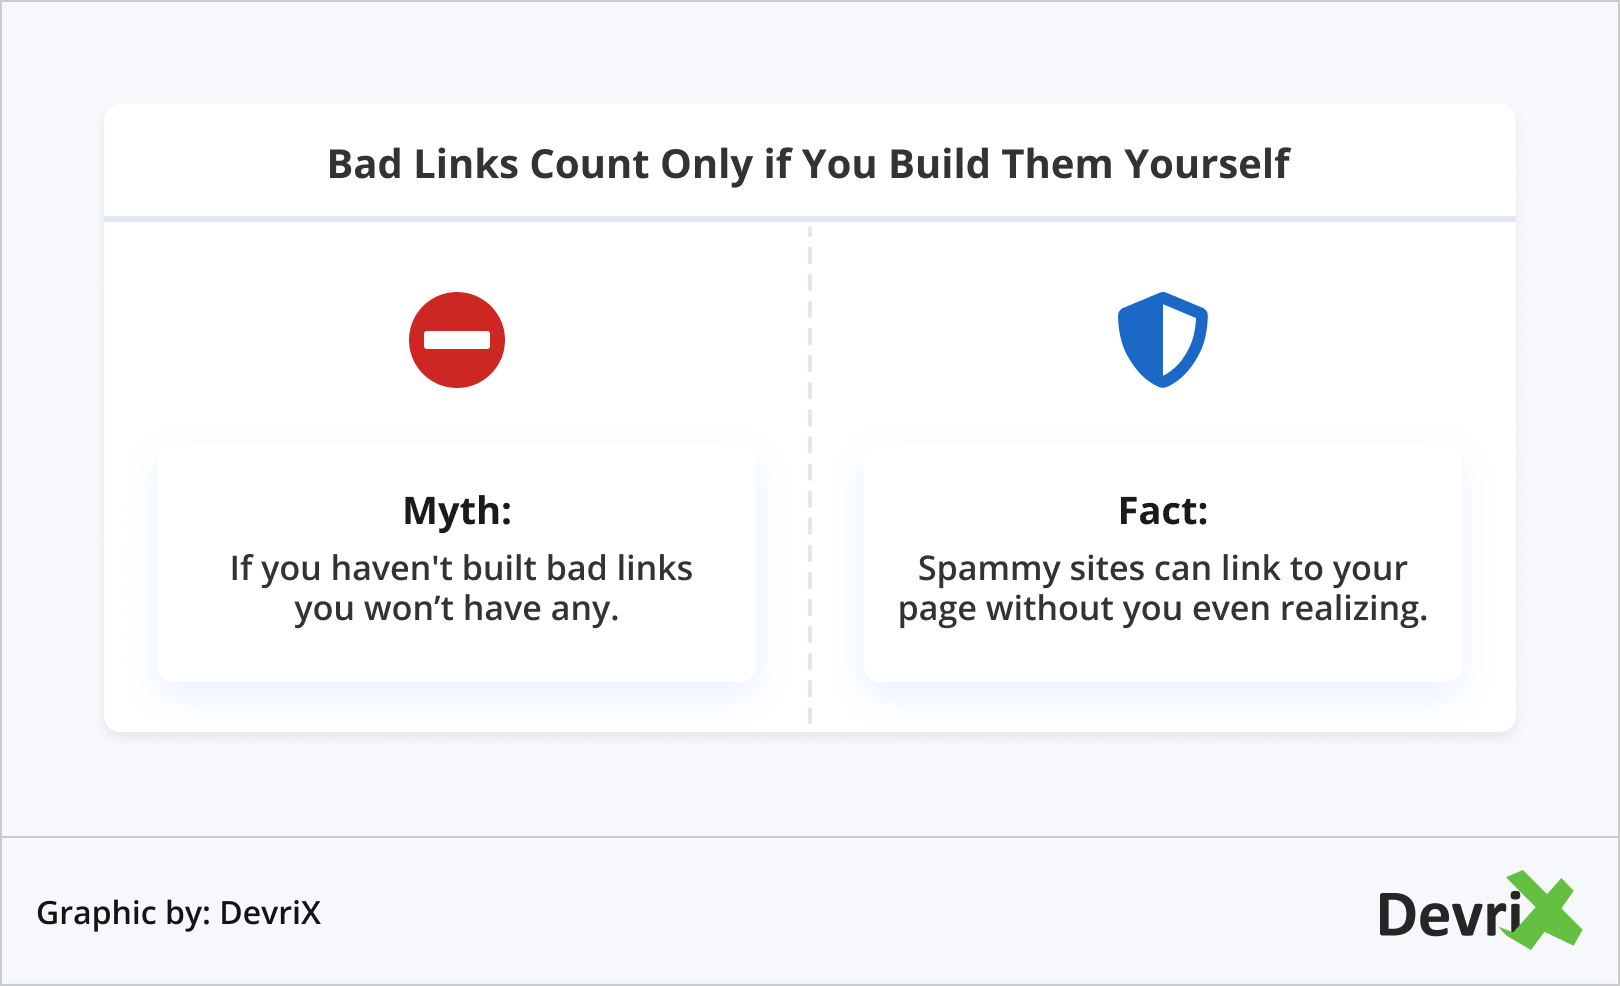 Bad Links Count Only if You Build Them Yourself